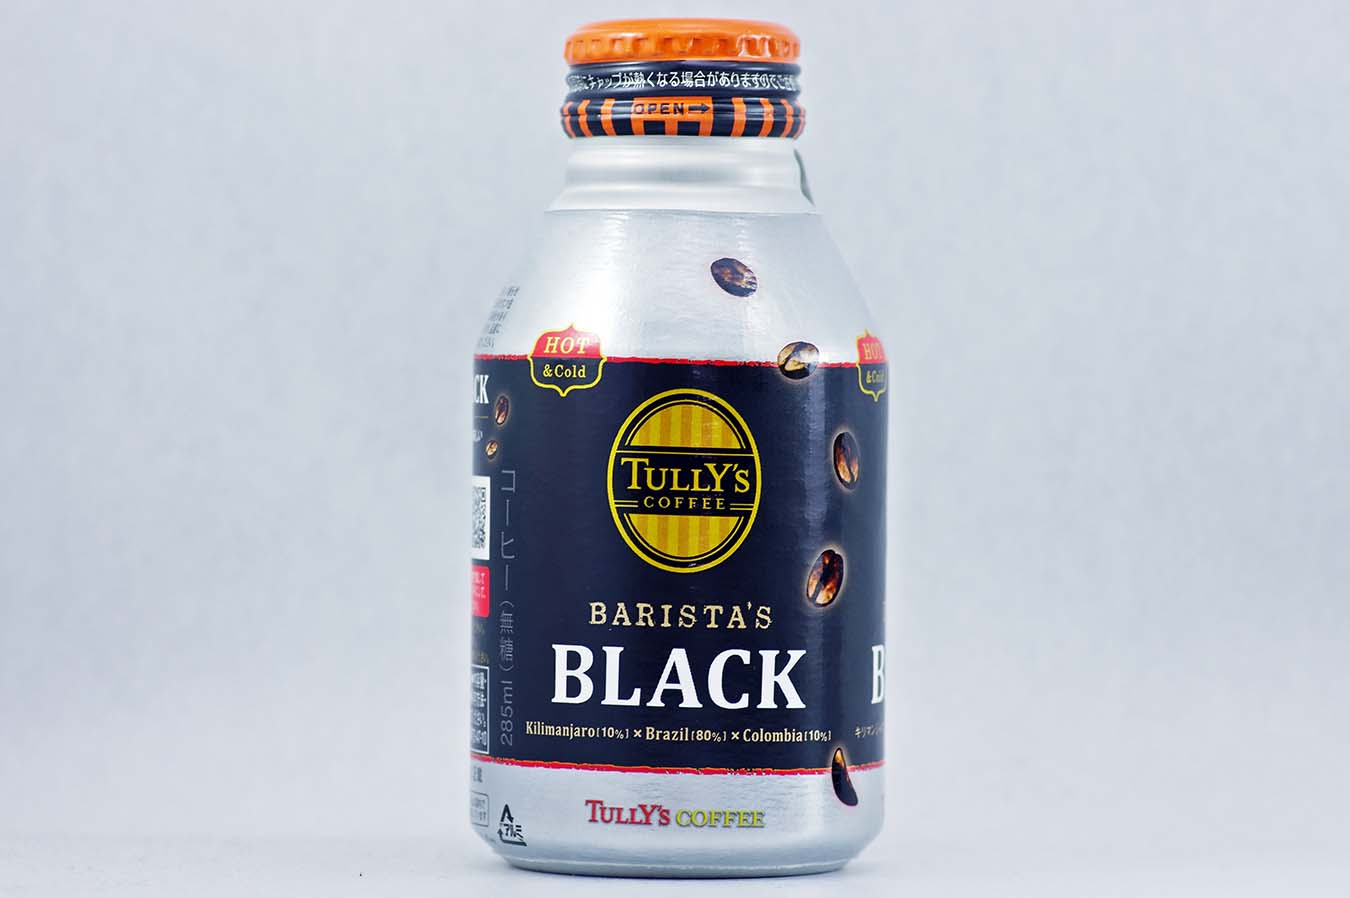 TULLY'S COFFEE BARISTA'S BLACK 285mlボトル缶 2015年10月